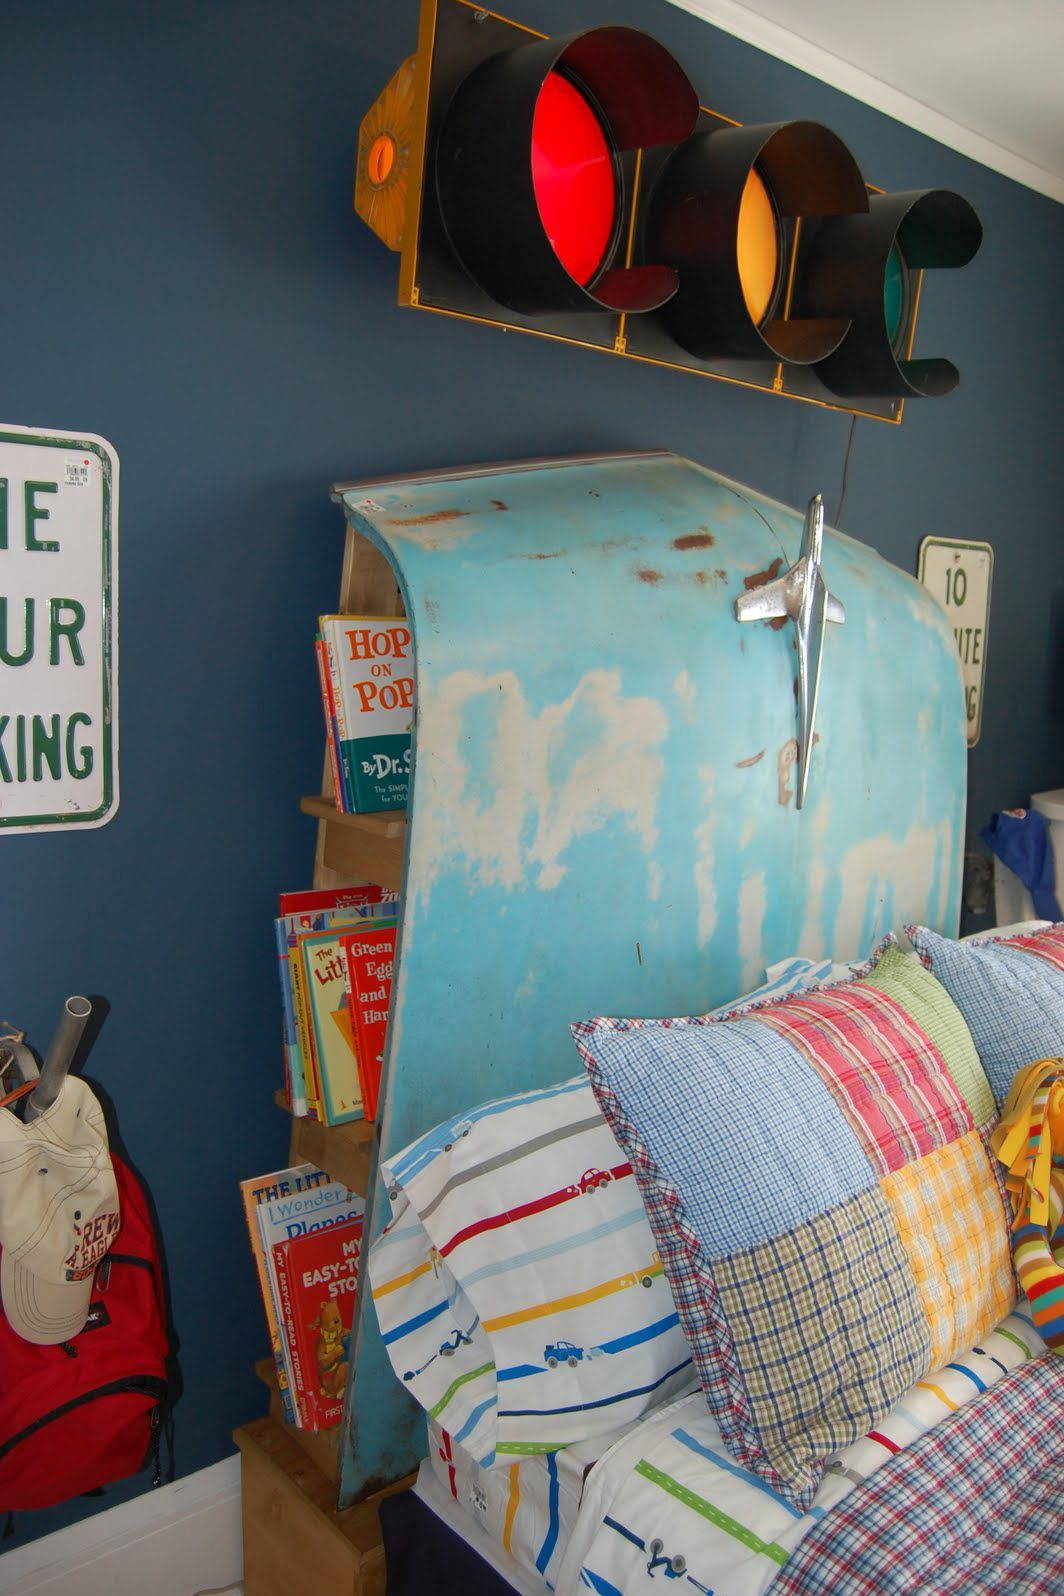 17 Ways To Repurpose Auto Parts Around Your Home How To Upcycle